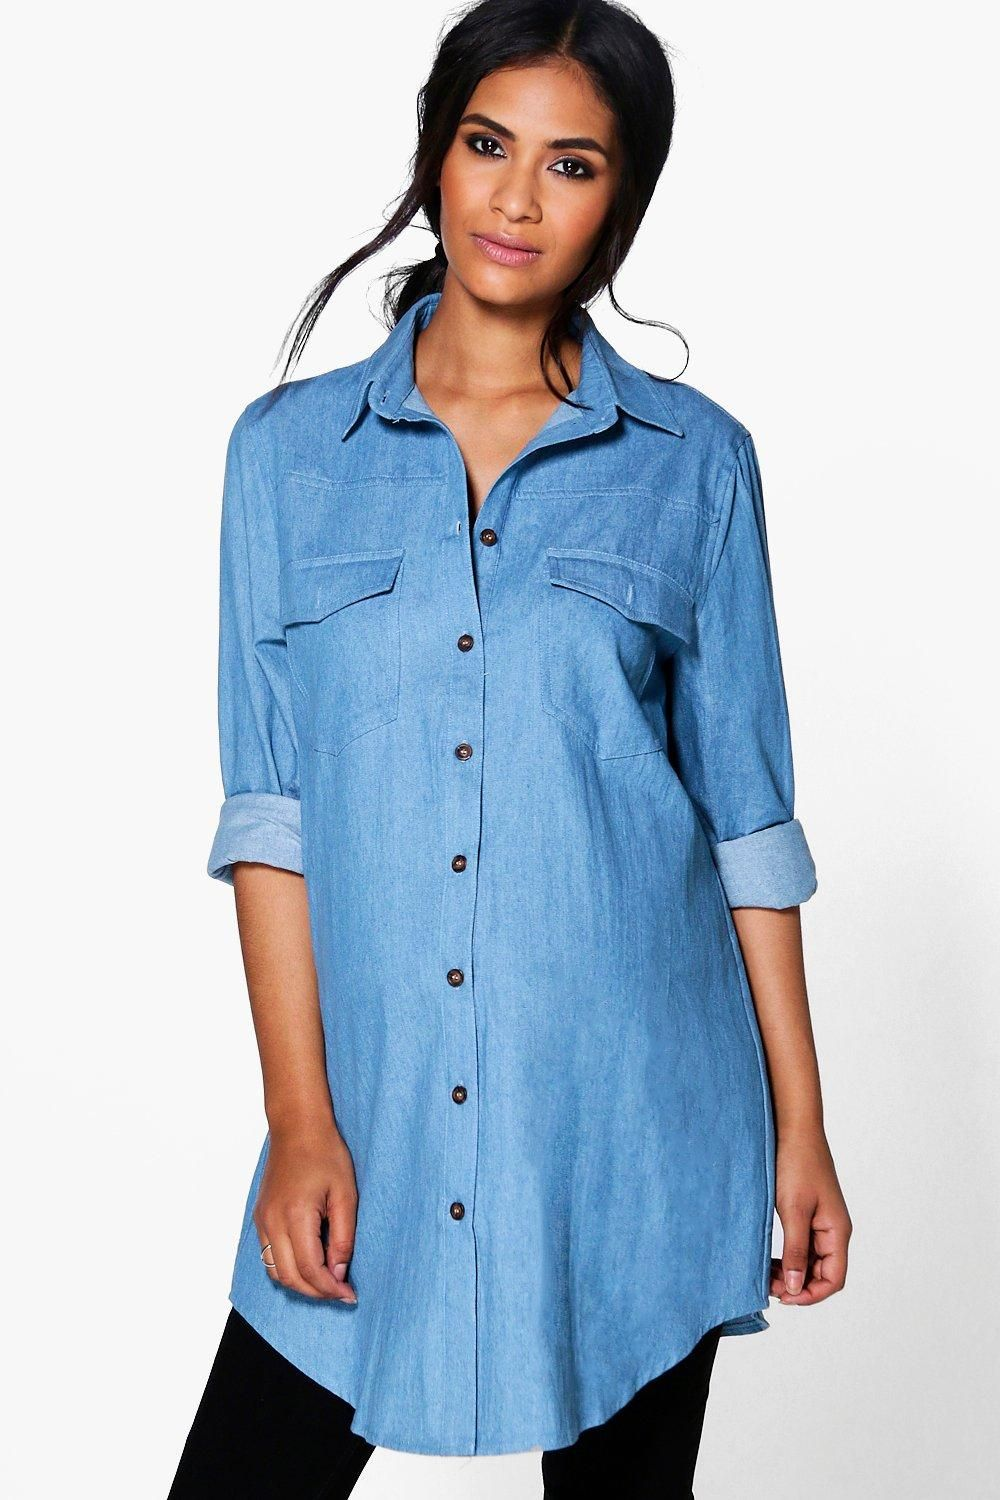 Maternity laila denim shirt images of motherhood pinterest maternity laila denim shirt ombrellifo Gallery